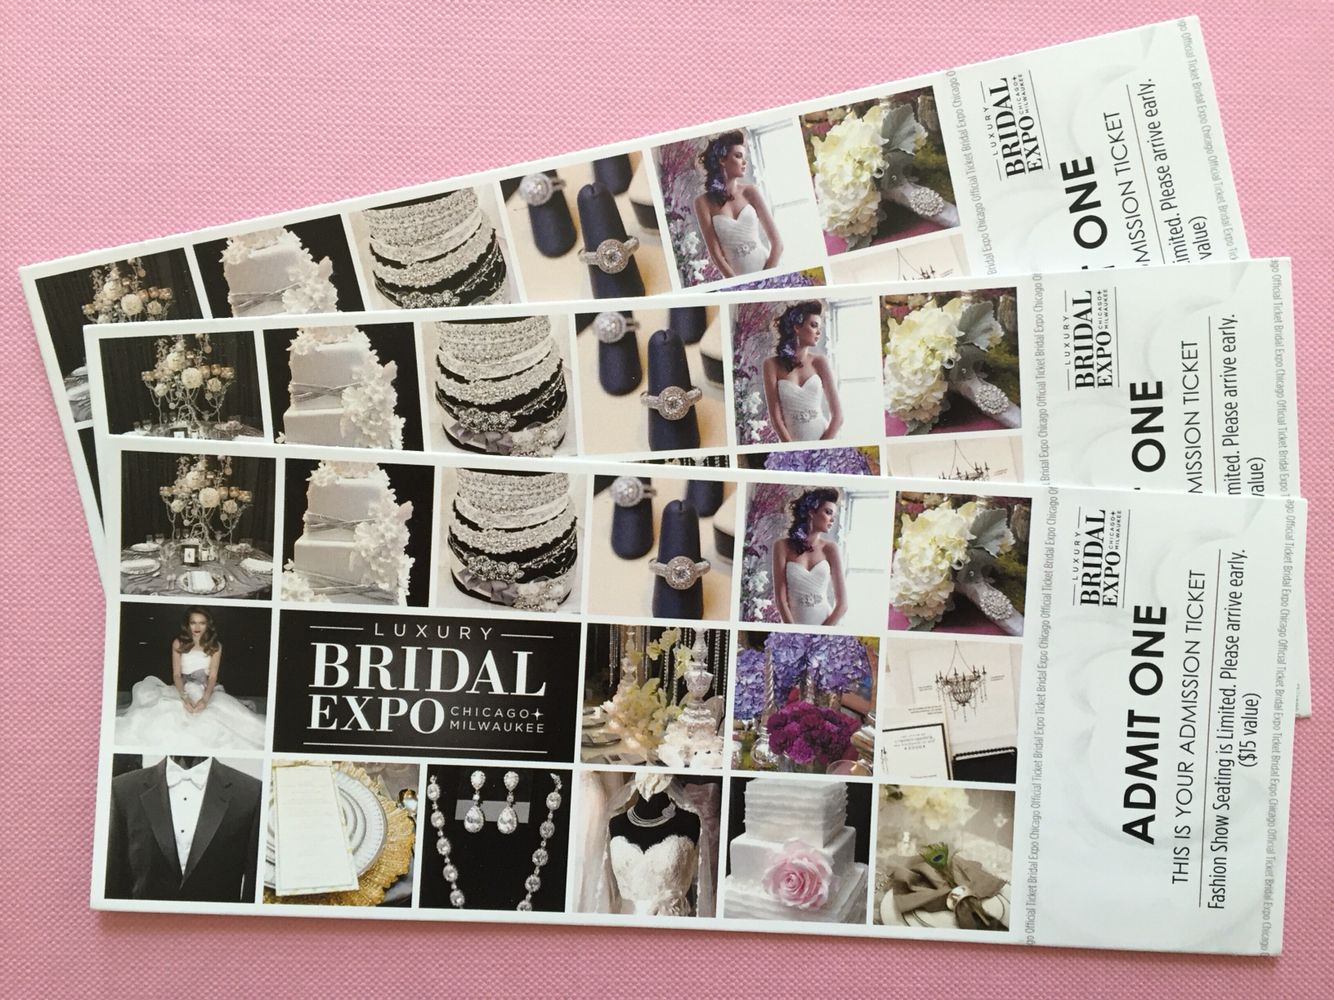 Wedicity is giving away tickets to the Bridal Expo Chicago show!! Good towards any show in 2016!   Wedicity will be featured at the June 12th show downtown! Comment below or message us for tickets!!